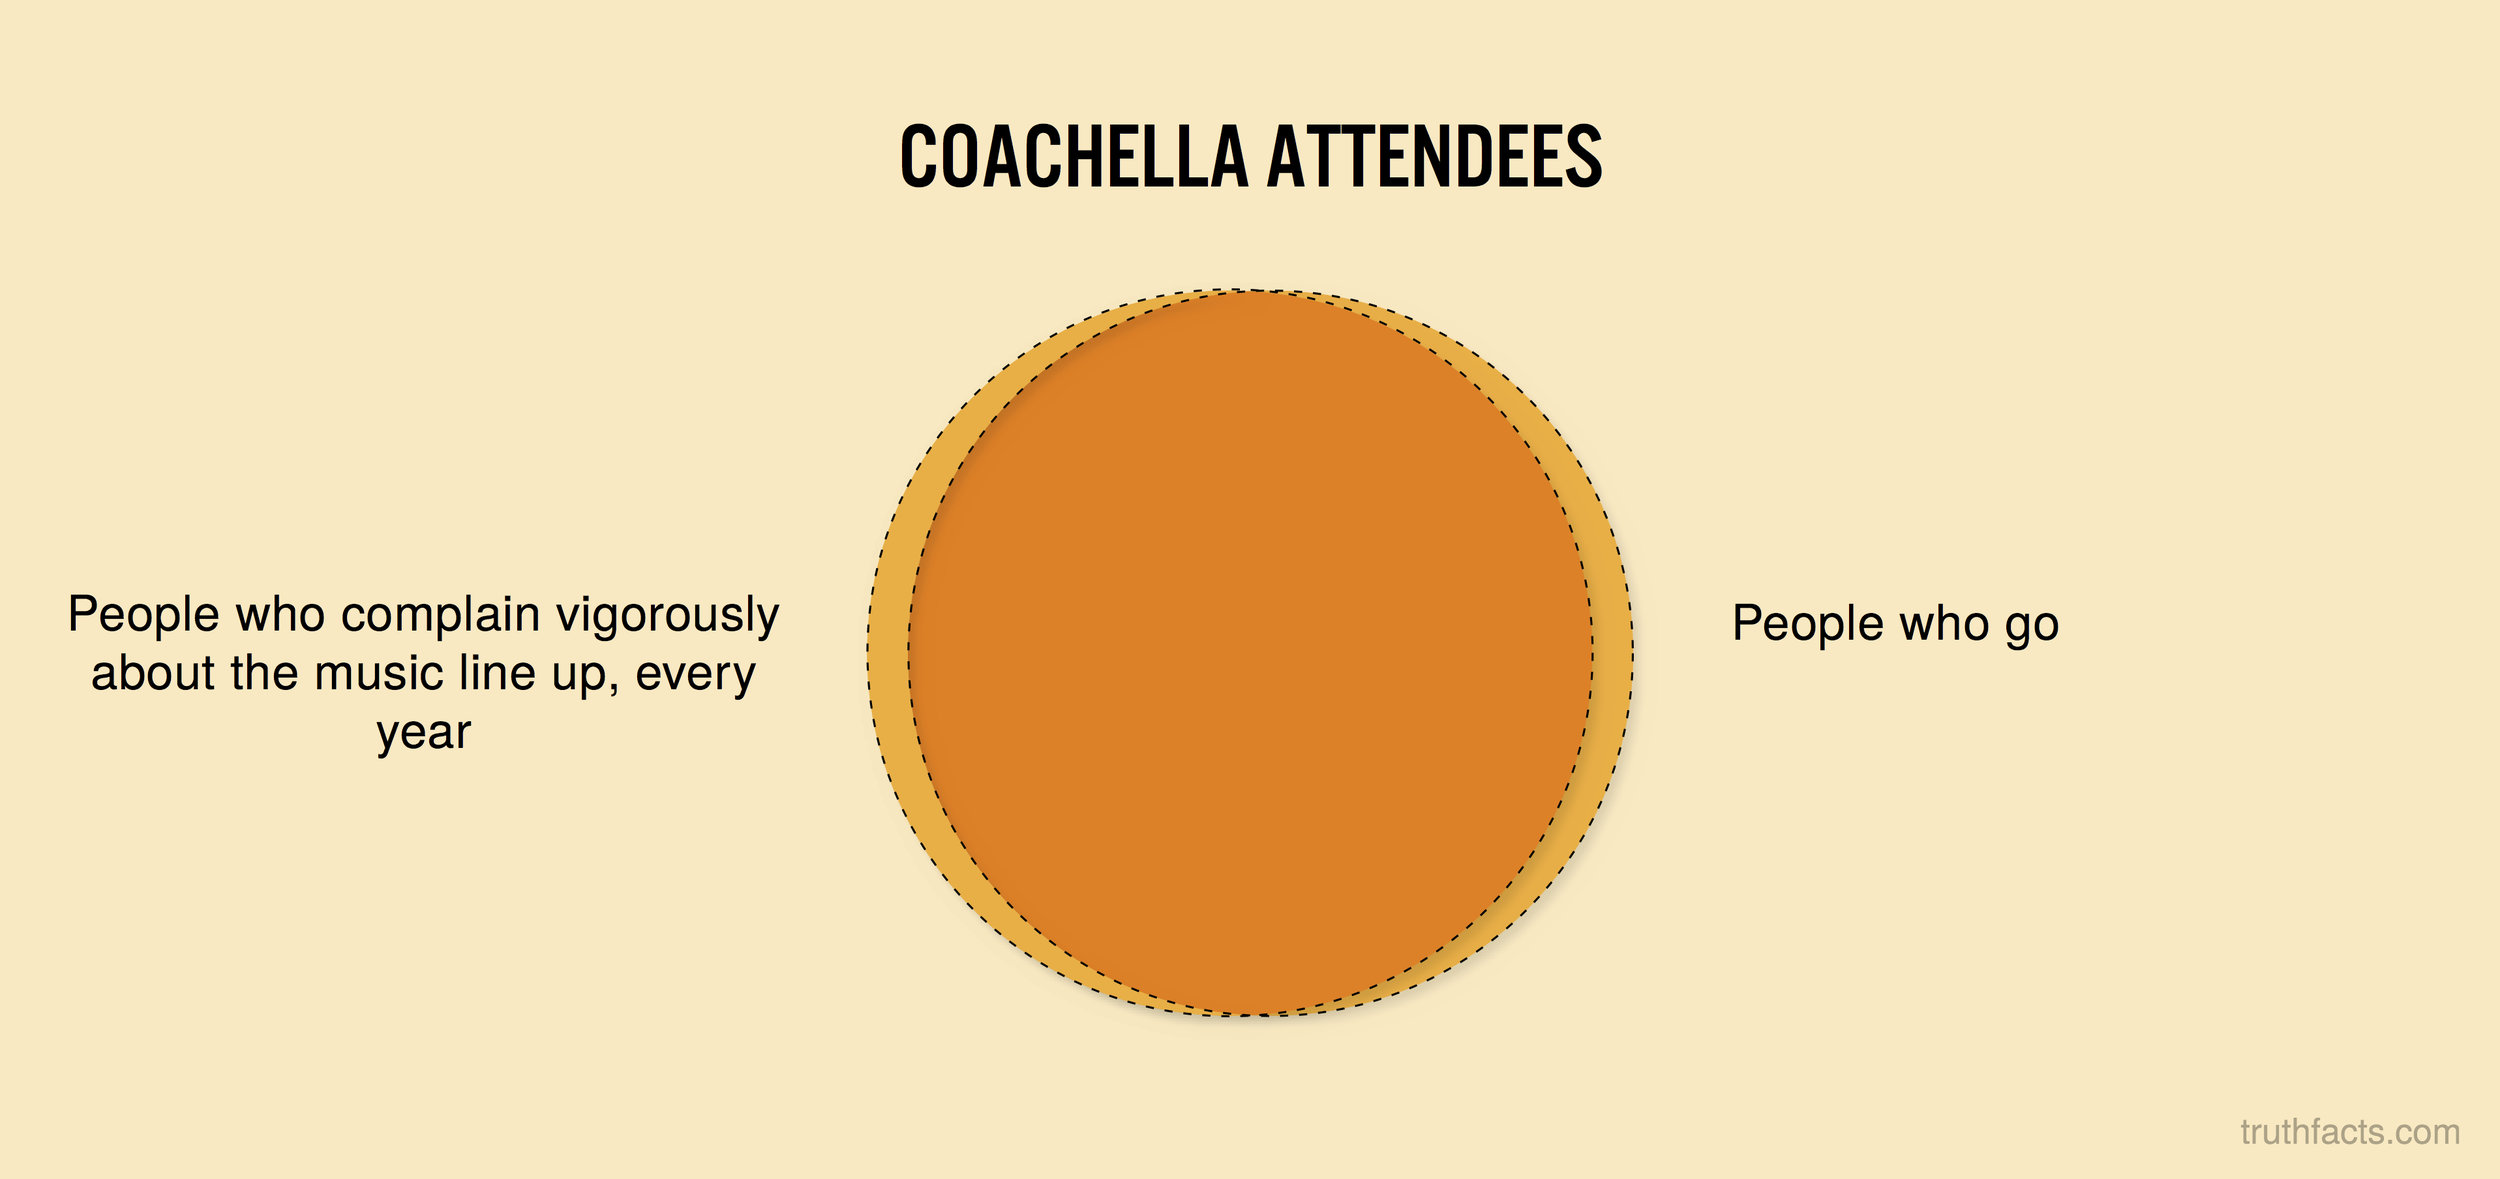 Coachella attendees